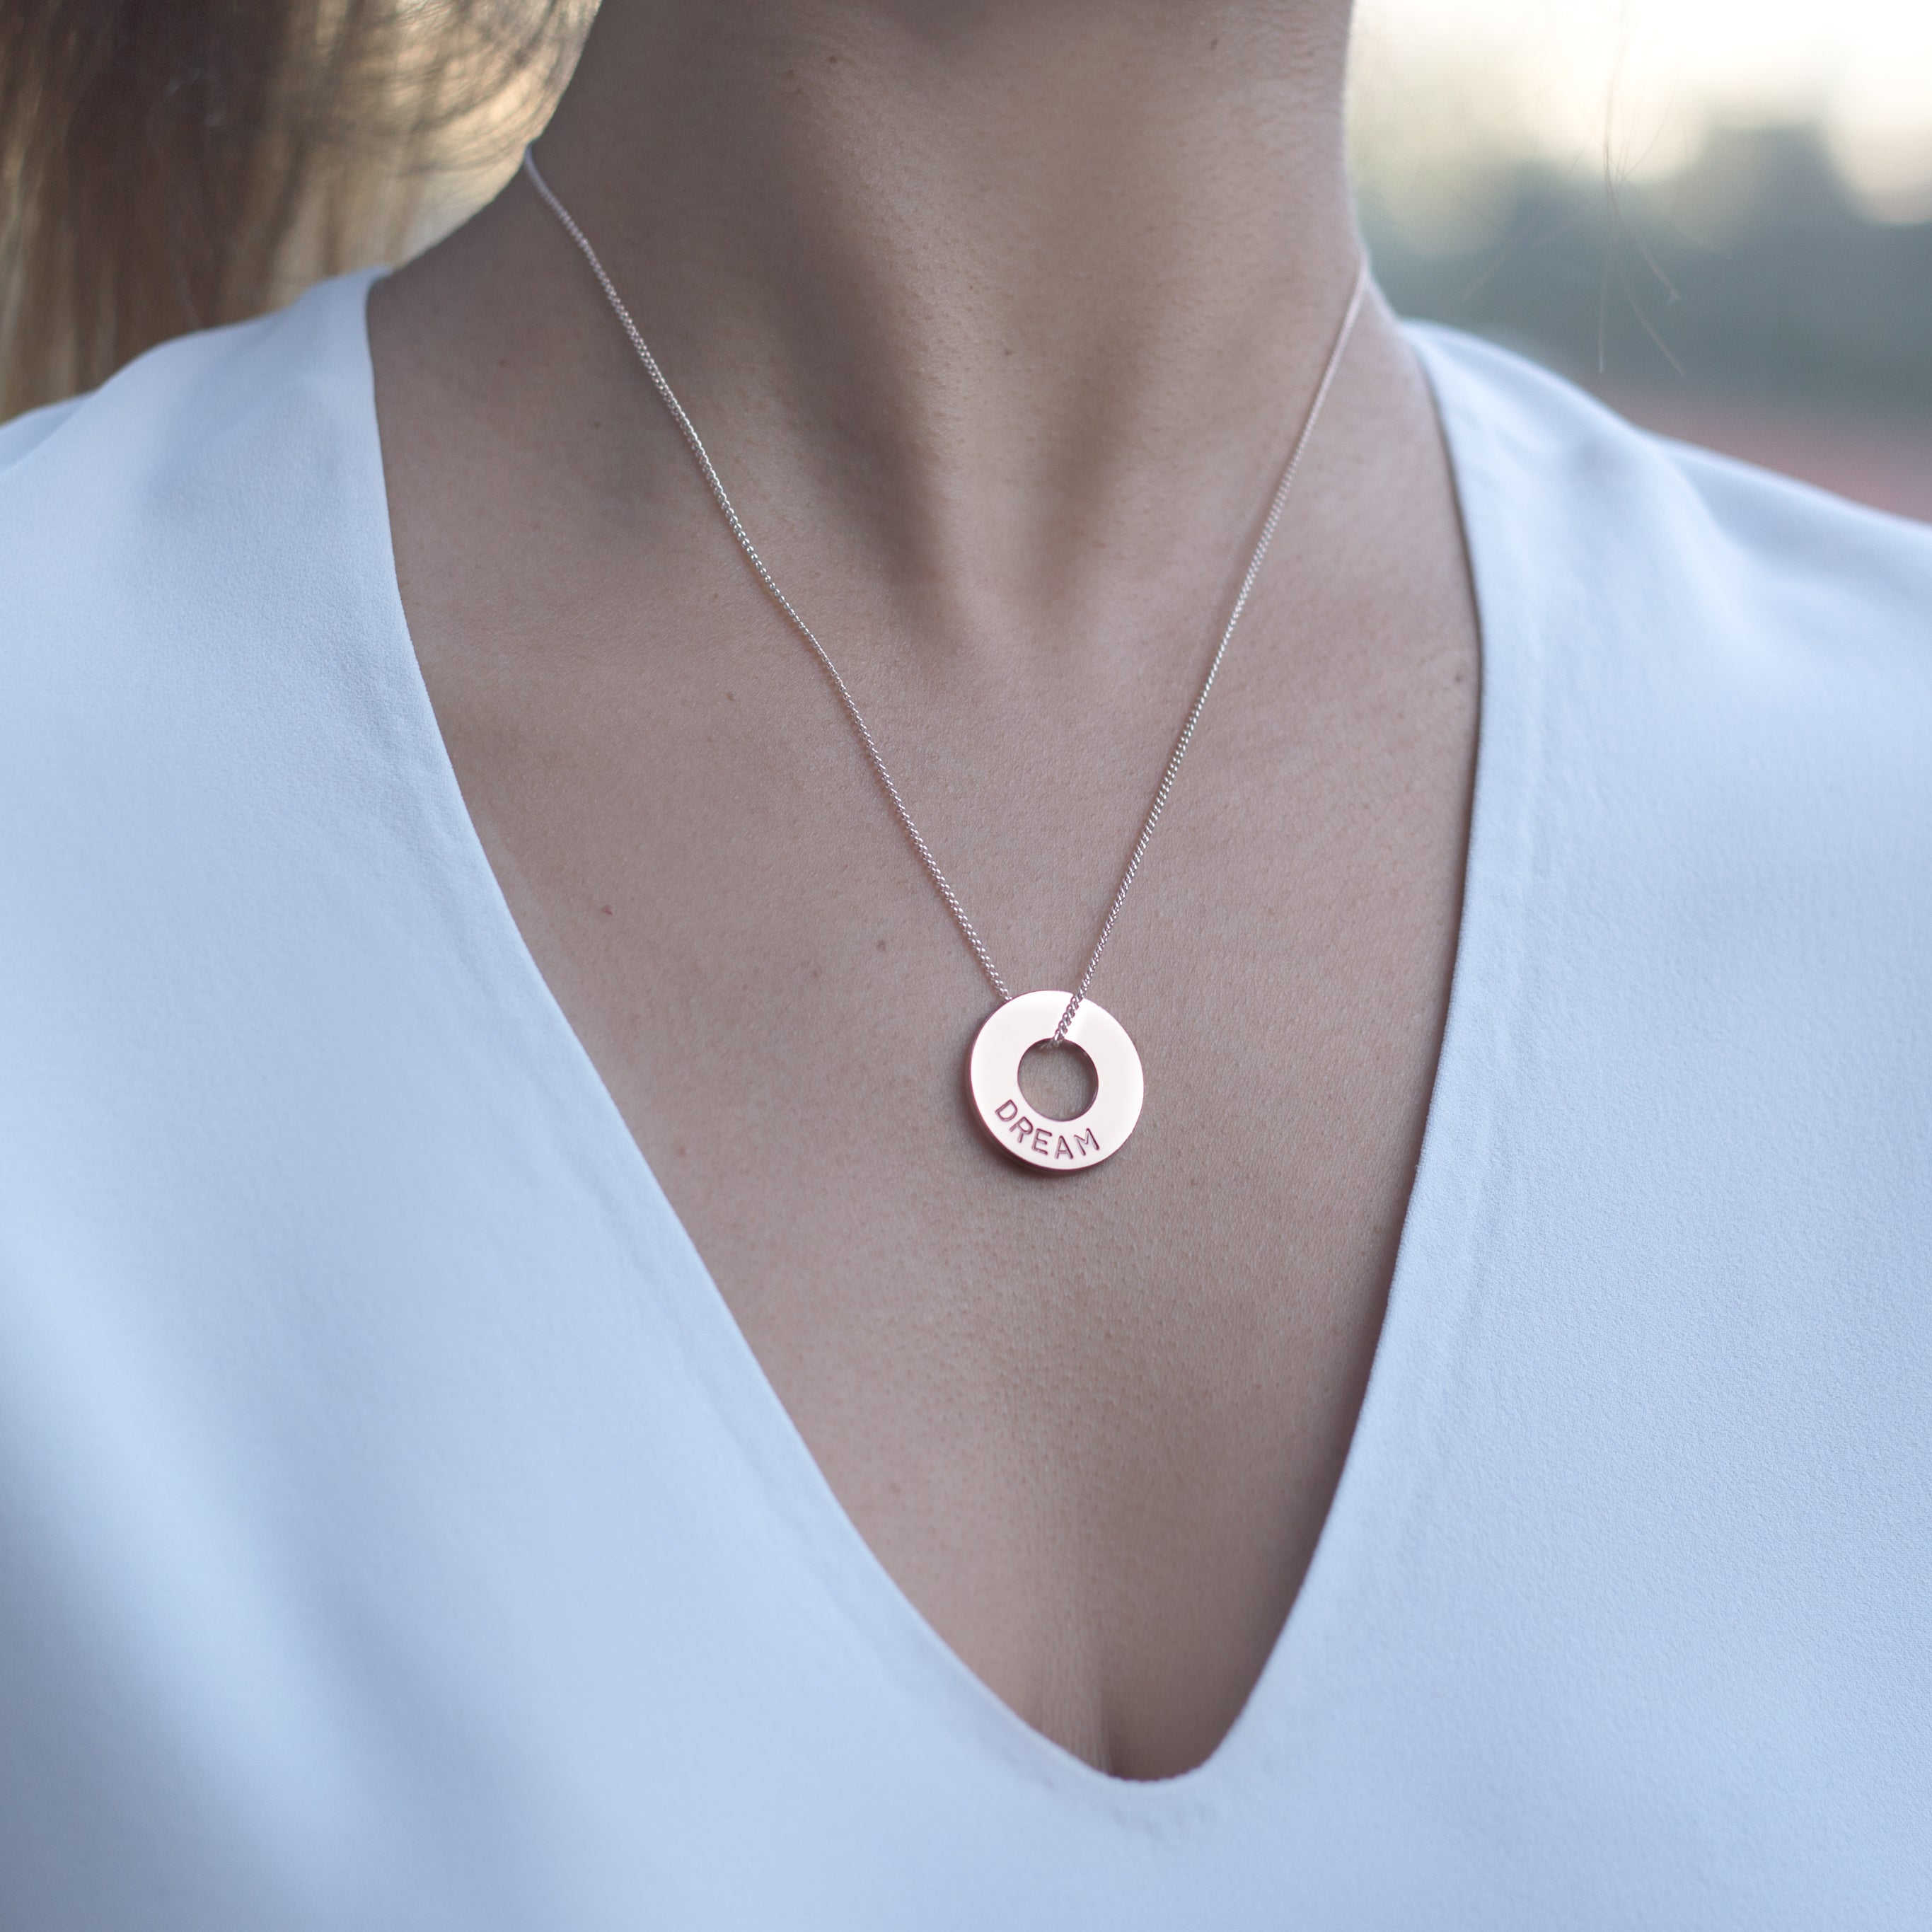 MyIntent Custom Dainty Necklace Rose Gold Plated Color with word DREAM